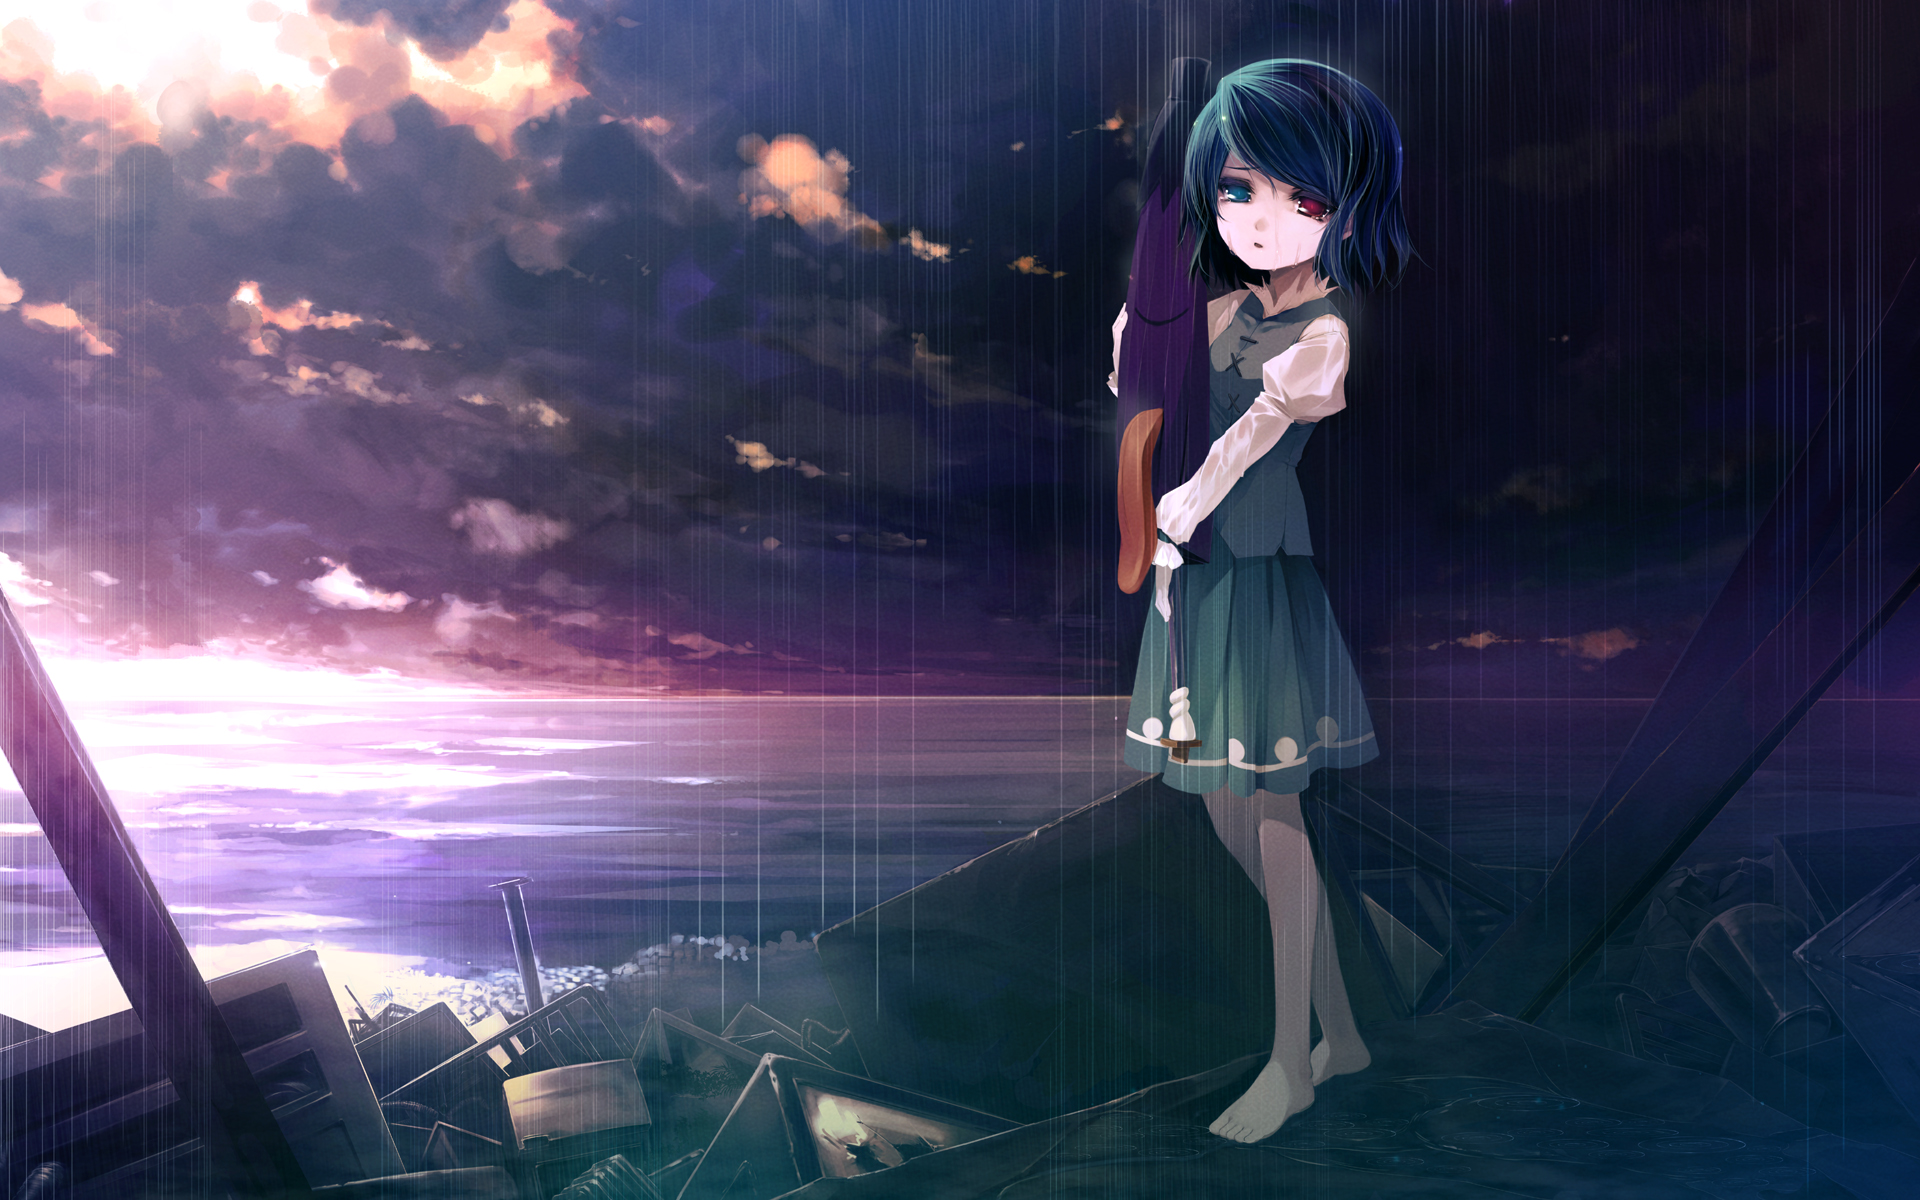 Touhou full hd wallpaper and background image 1920x1200 - Full hd anime wallpaper pack ...